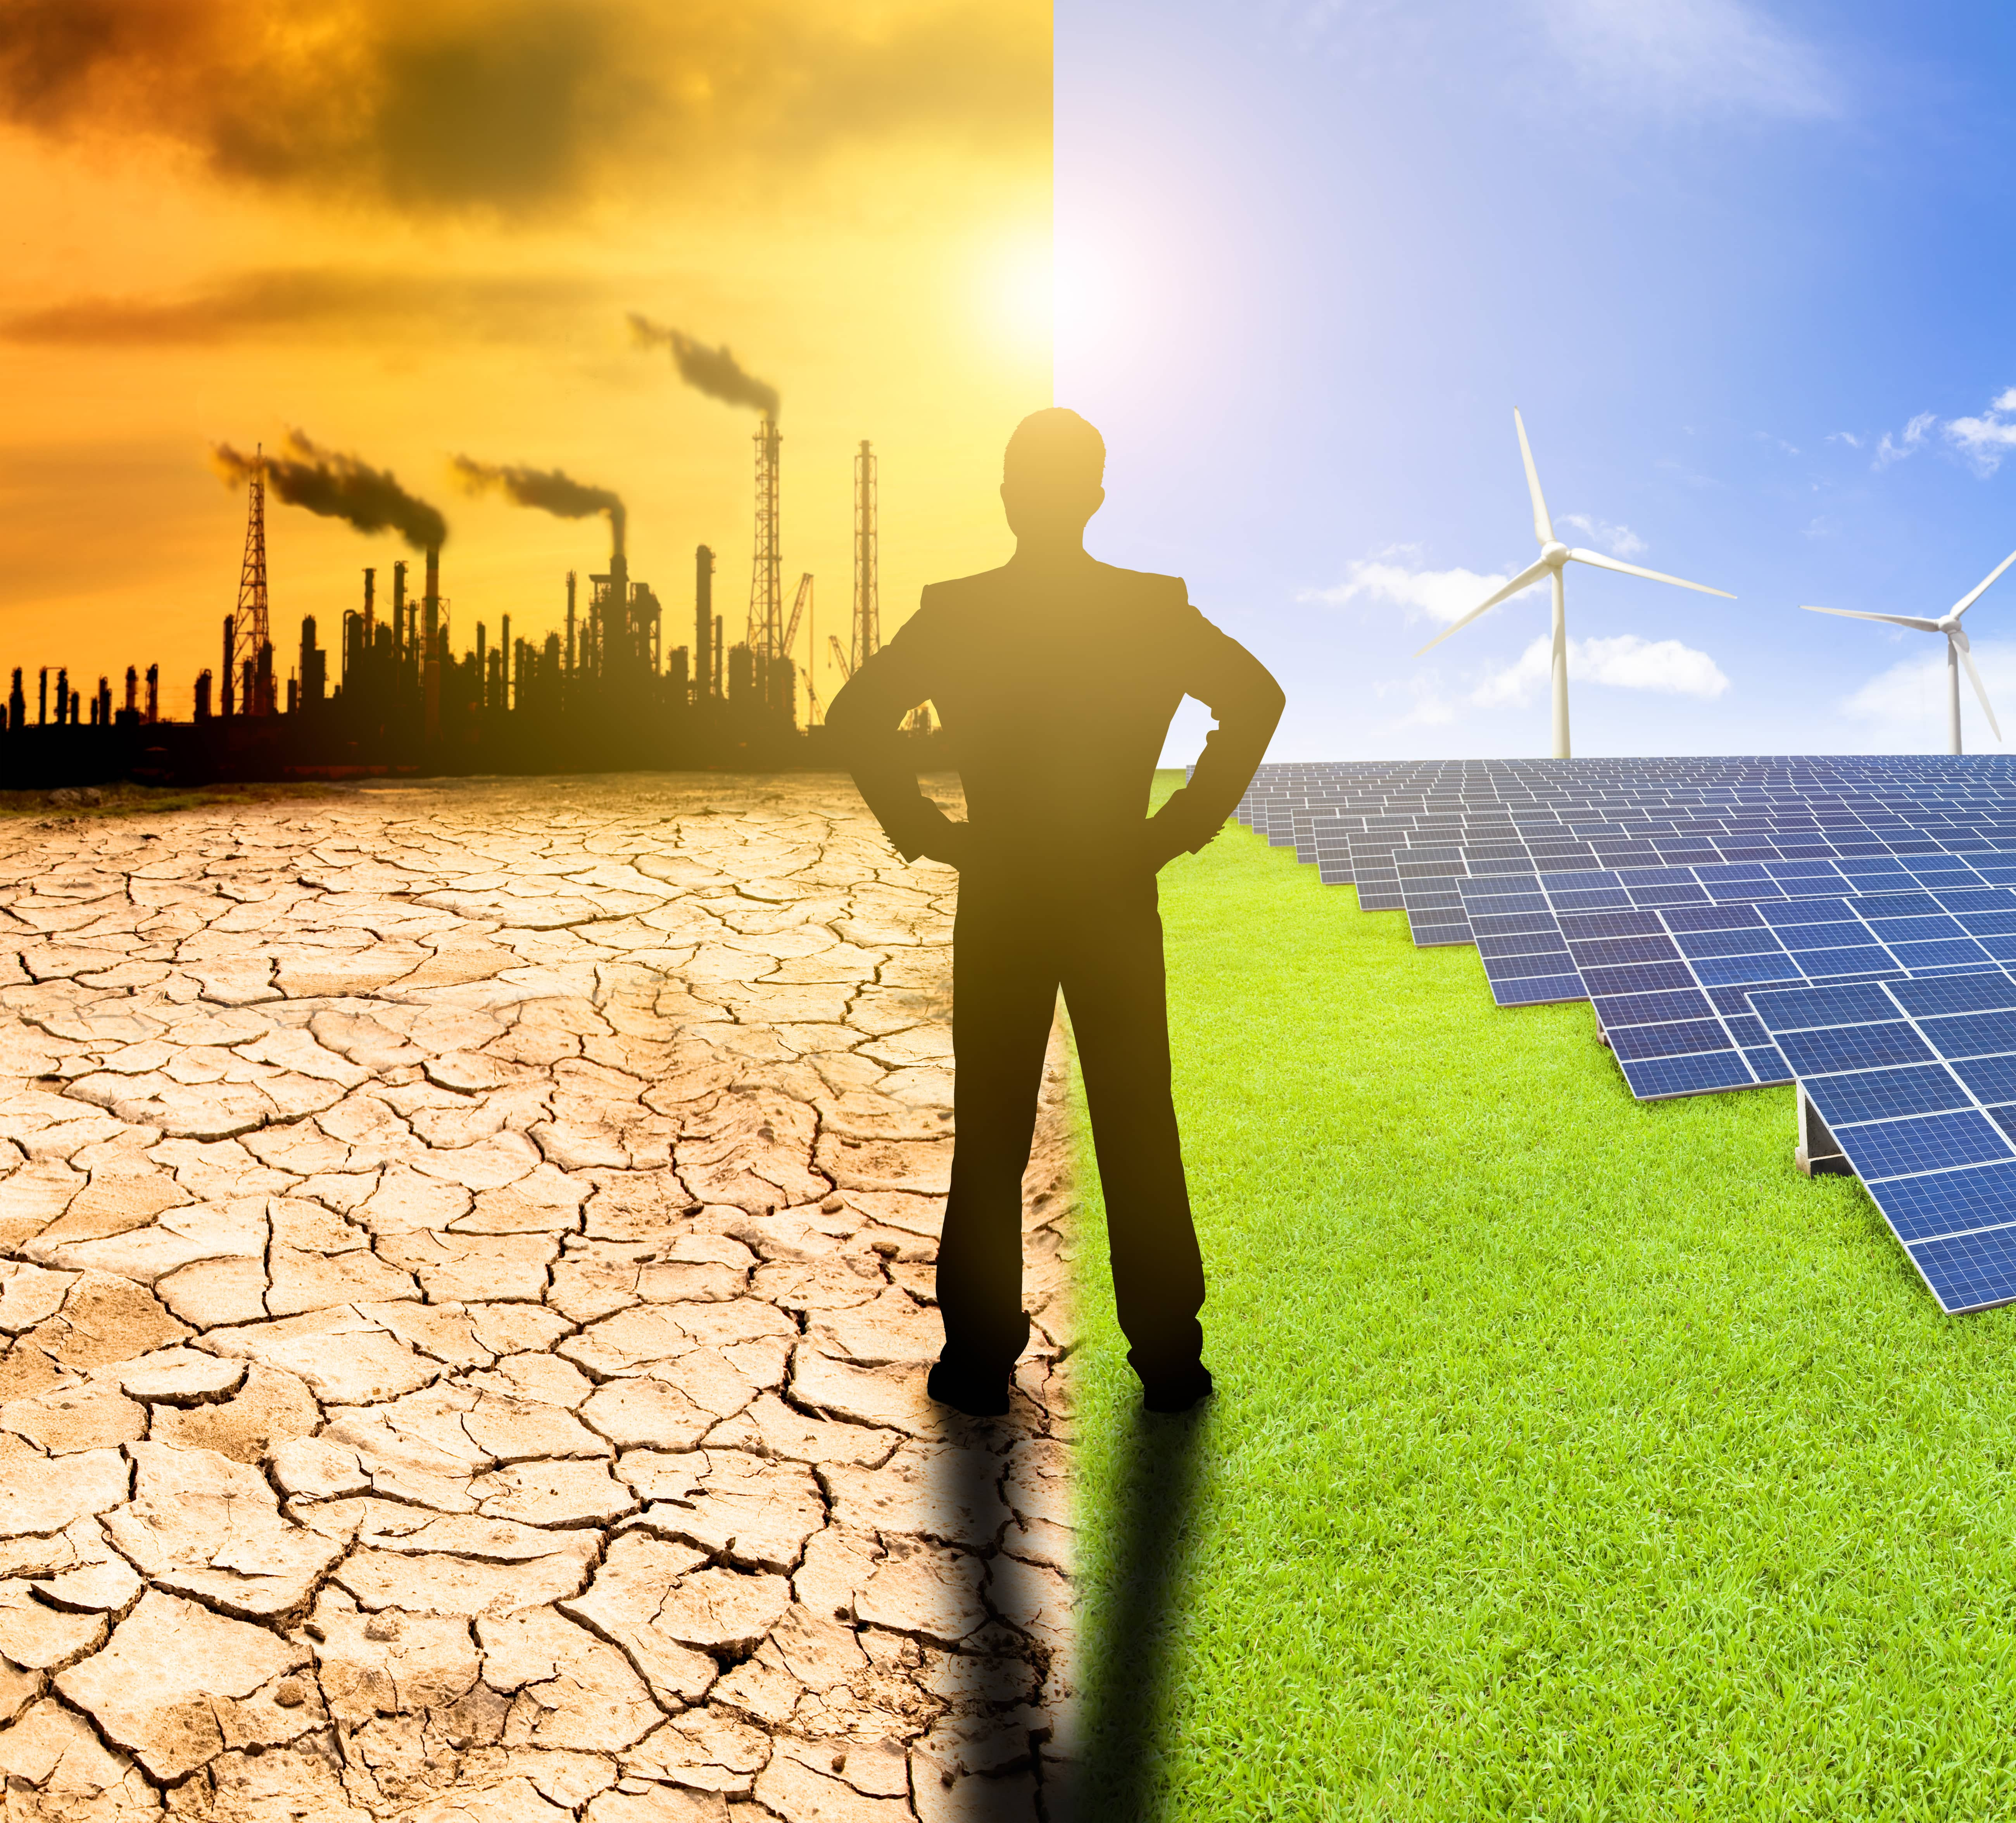 iStock-492334365 Canada Plans Major Shift From Coal To Clean Energy By 2030